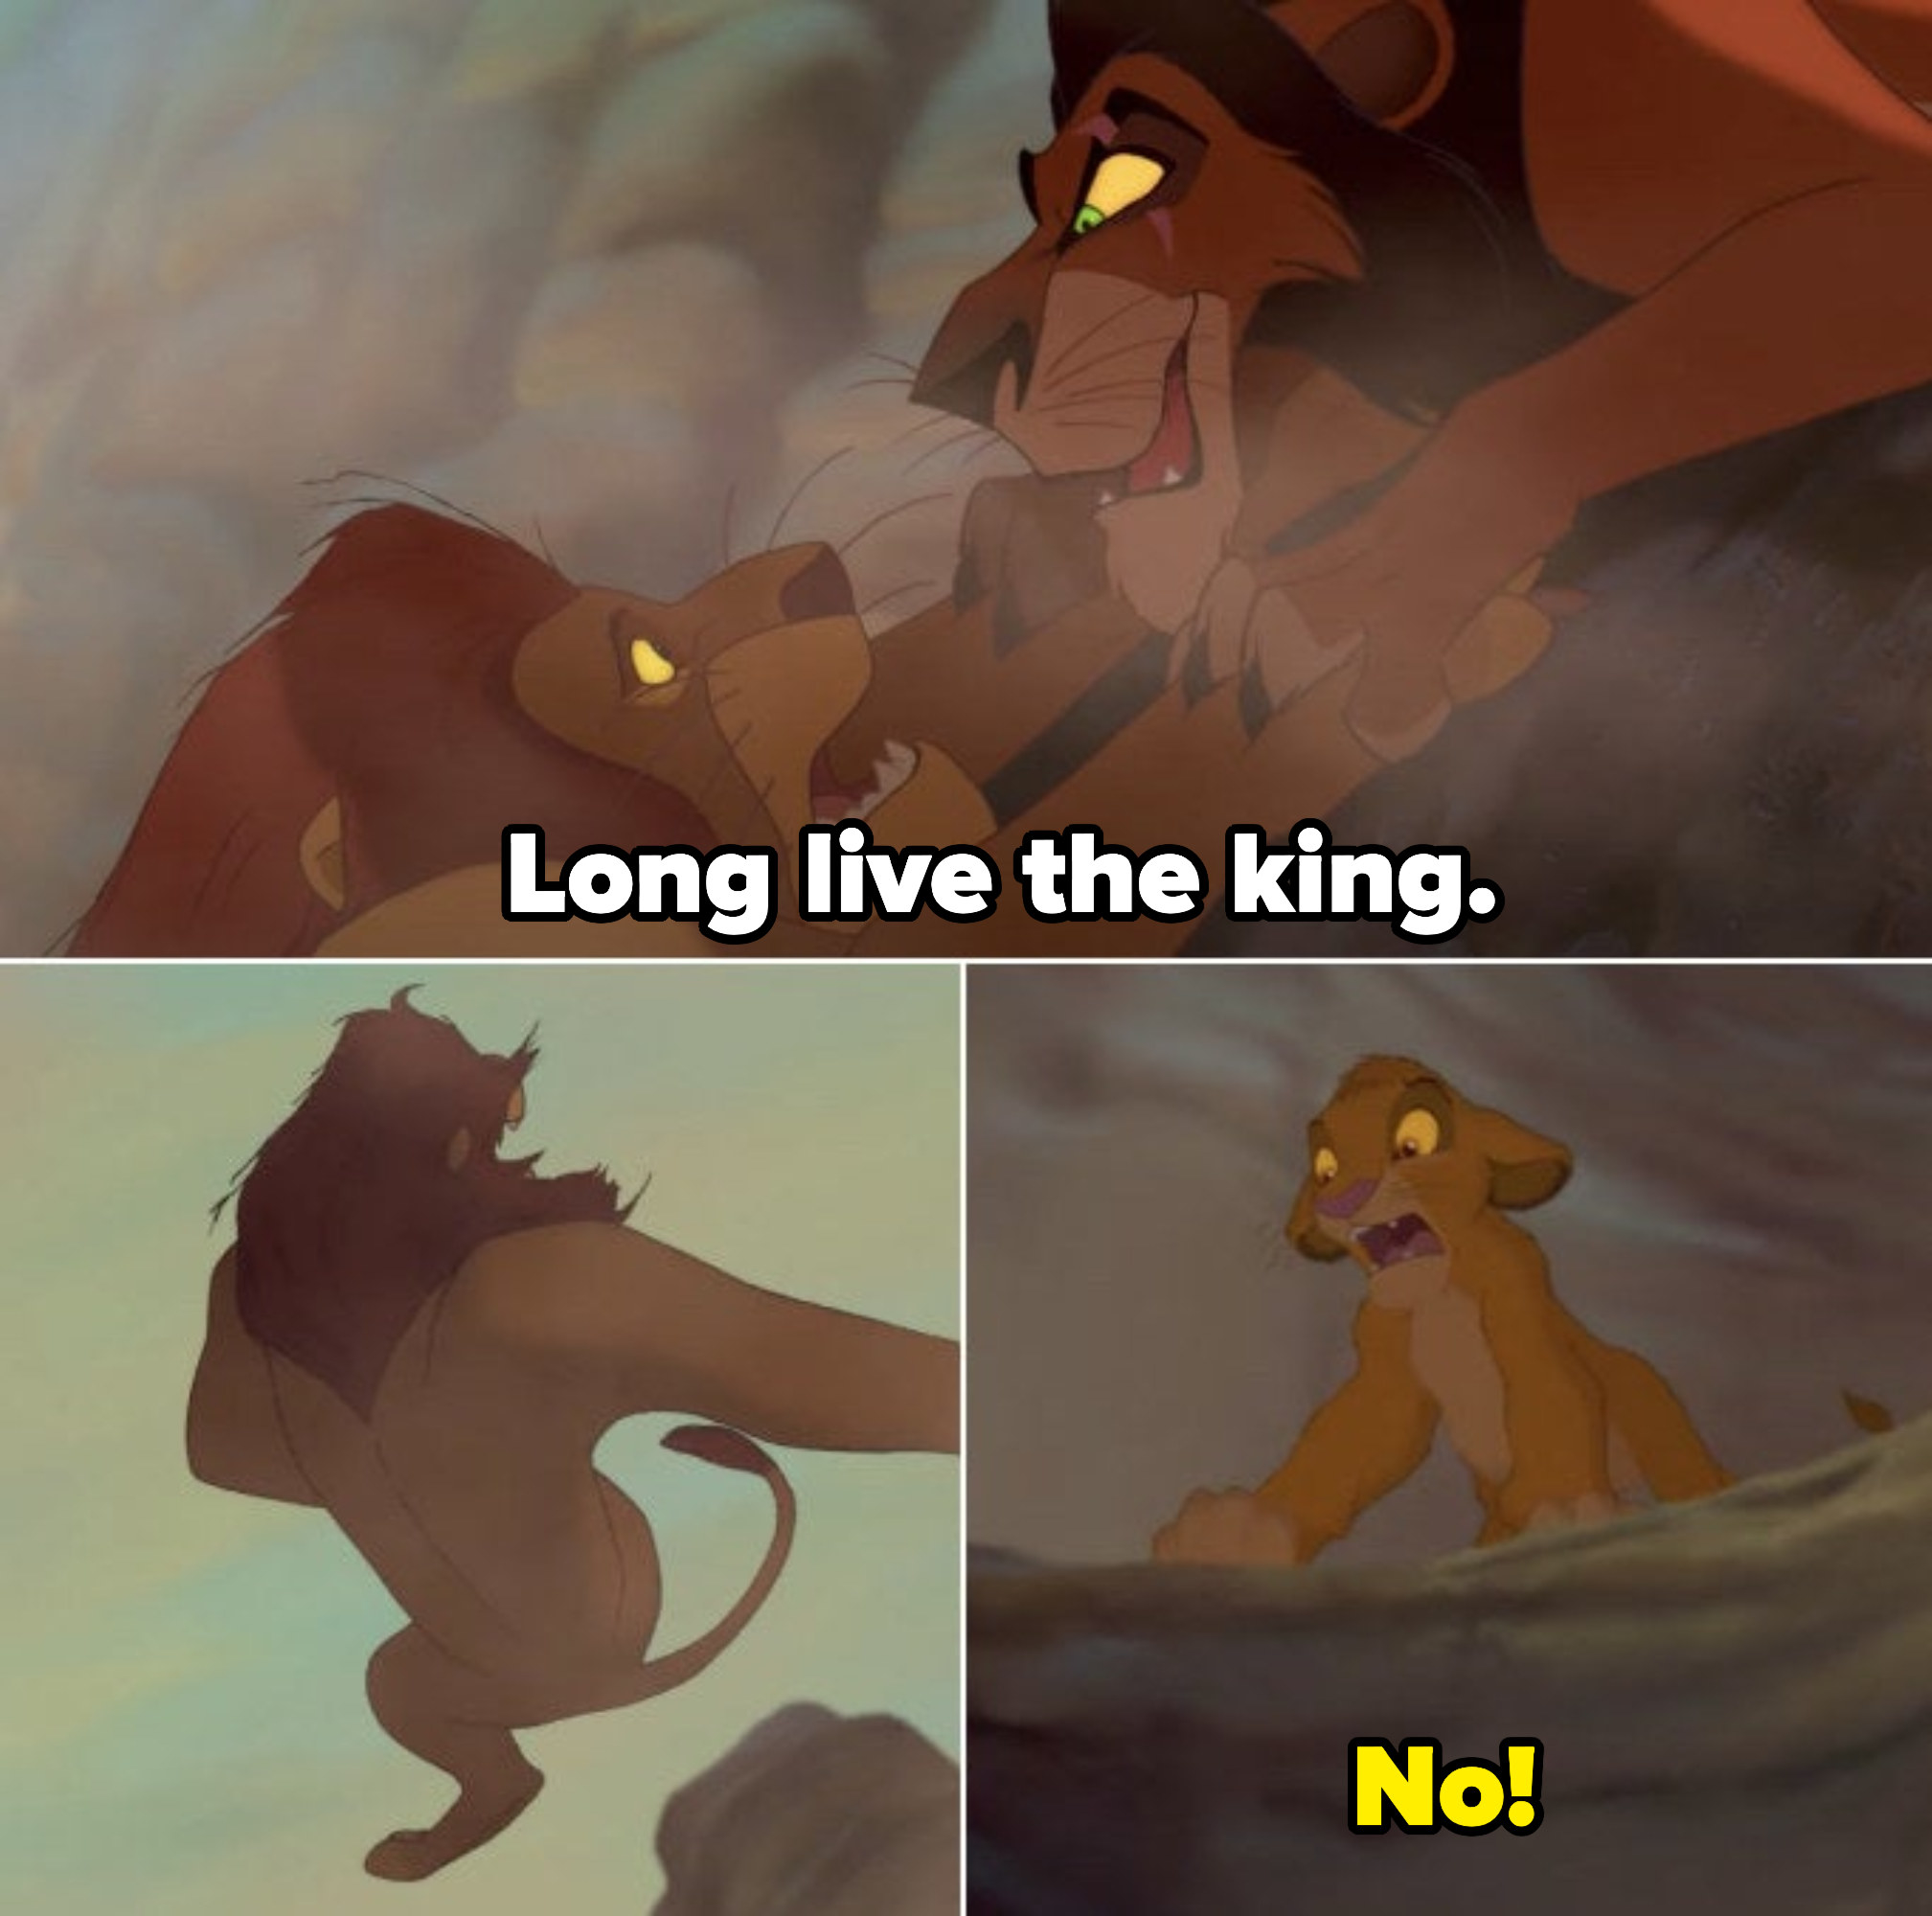 "Scar looks at Mufasa with an evil grin, claws on his claws, letting him go and pushing him off into the stampede as he says, ""Long live the king."" Simba looks on heartbroken, watching his father die"